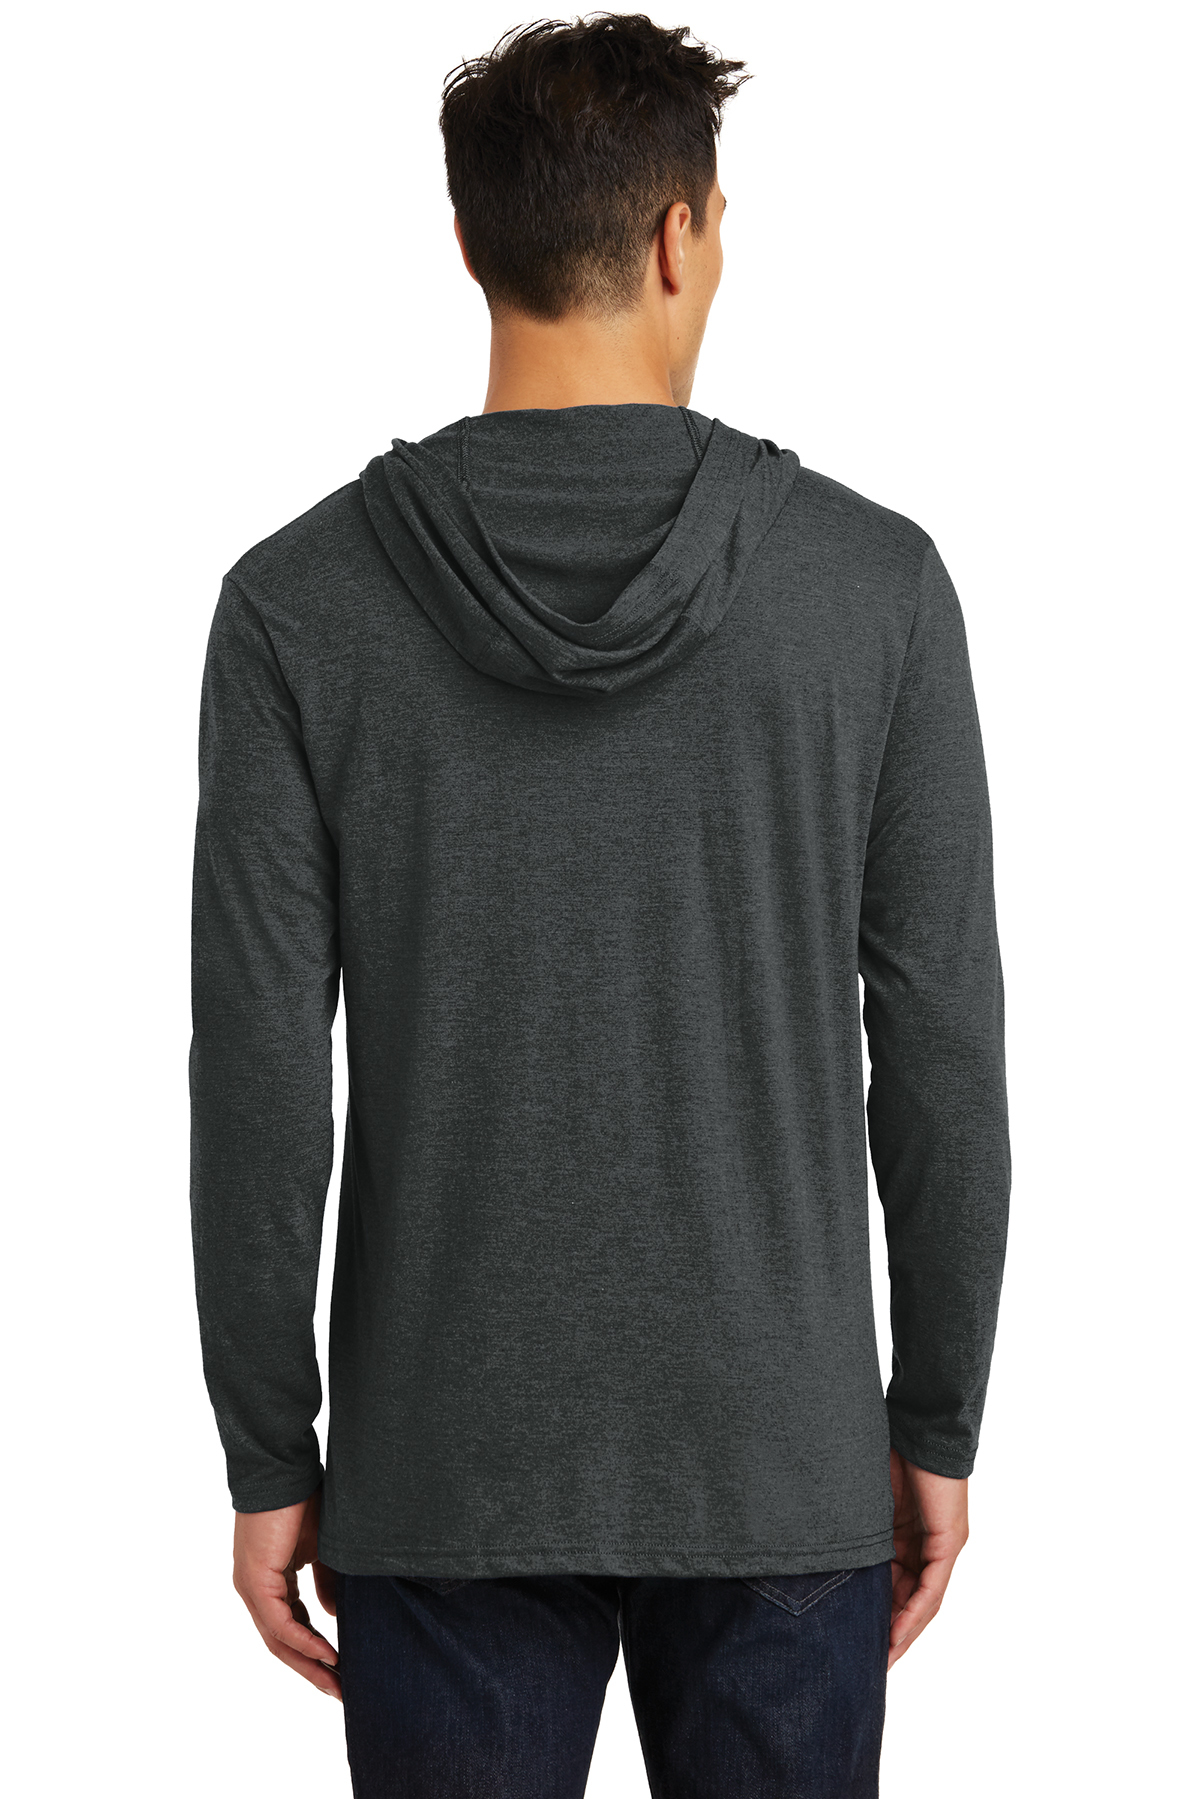 50 50 Outlet >> District ® Perfect Tri ® Long Sleeve Hoodie | Long Sleeve | T-Shirts | SanMar